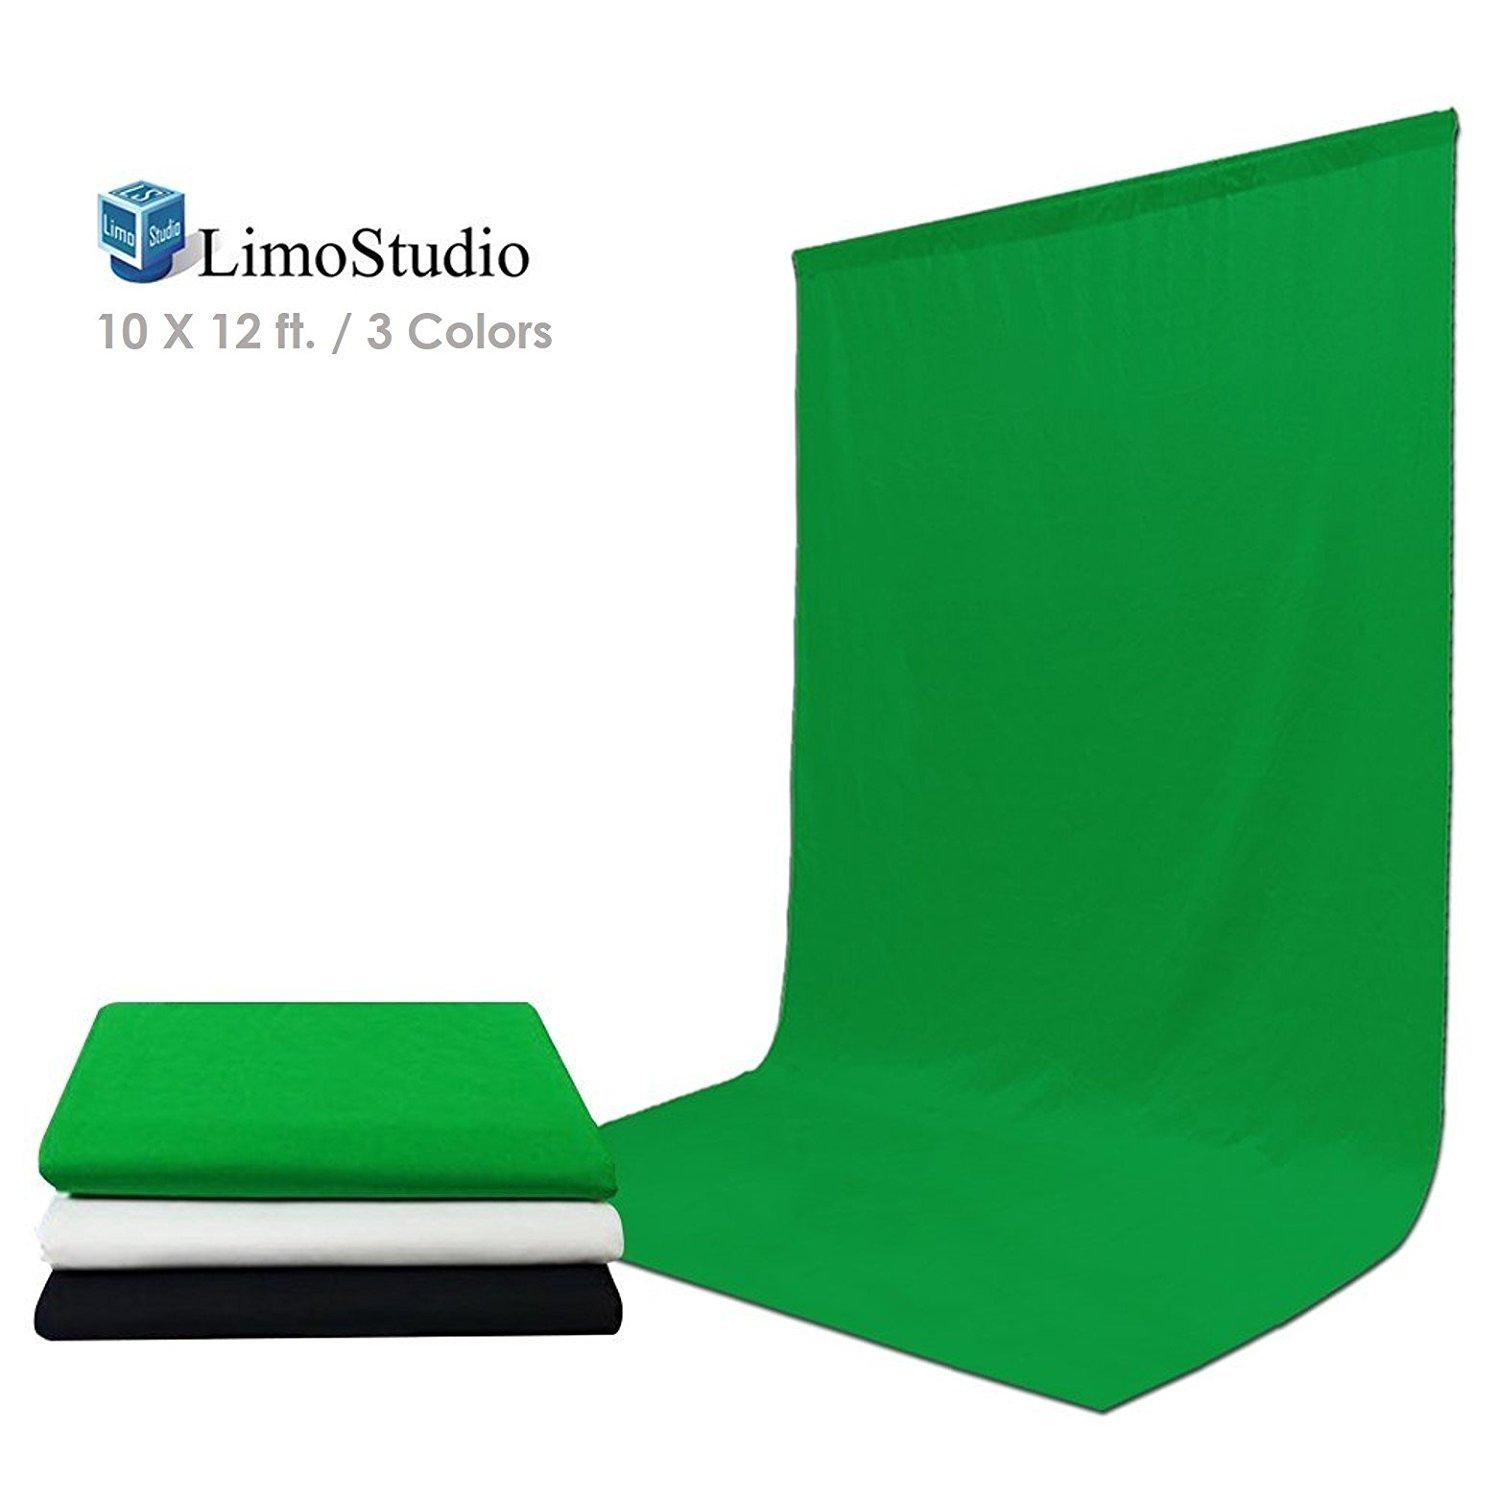 LimoStudio 10 Foot X 12 Foot Black and Green and White Chromakey Photo Video Photography Studio Fabric Backdrop Background Screen, AGG1933V2 by LimoStudio